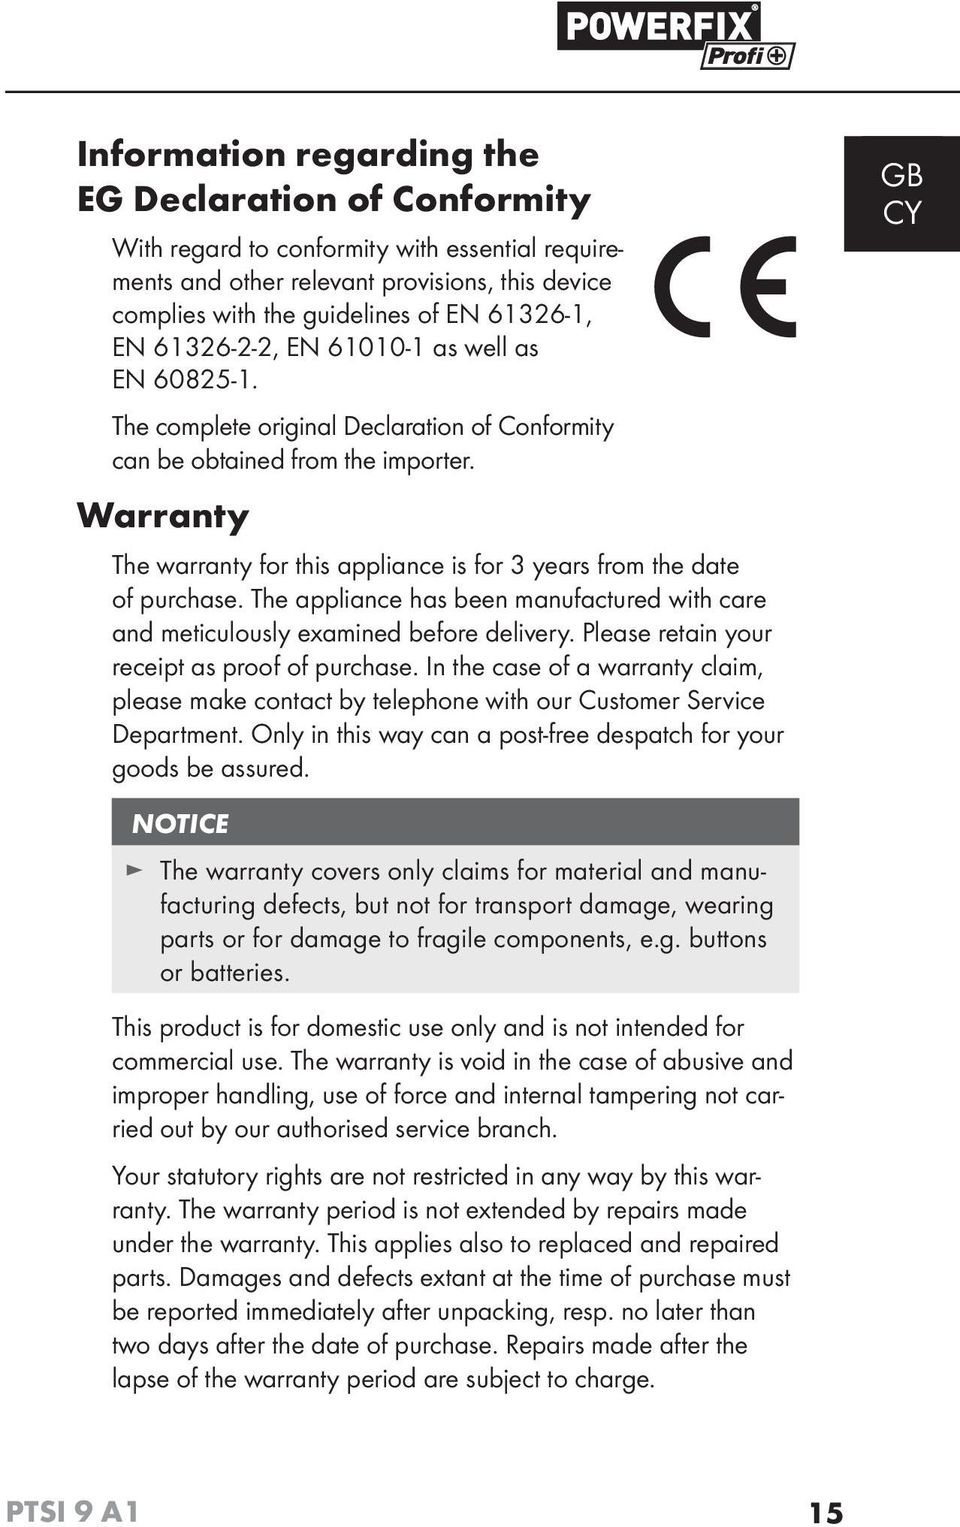 Warranty The warranty for this appliance is for 3 years from the date of purchase. The appliance has been manufactured with care and meticulously examined before delivery.